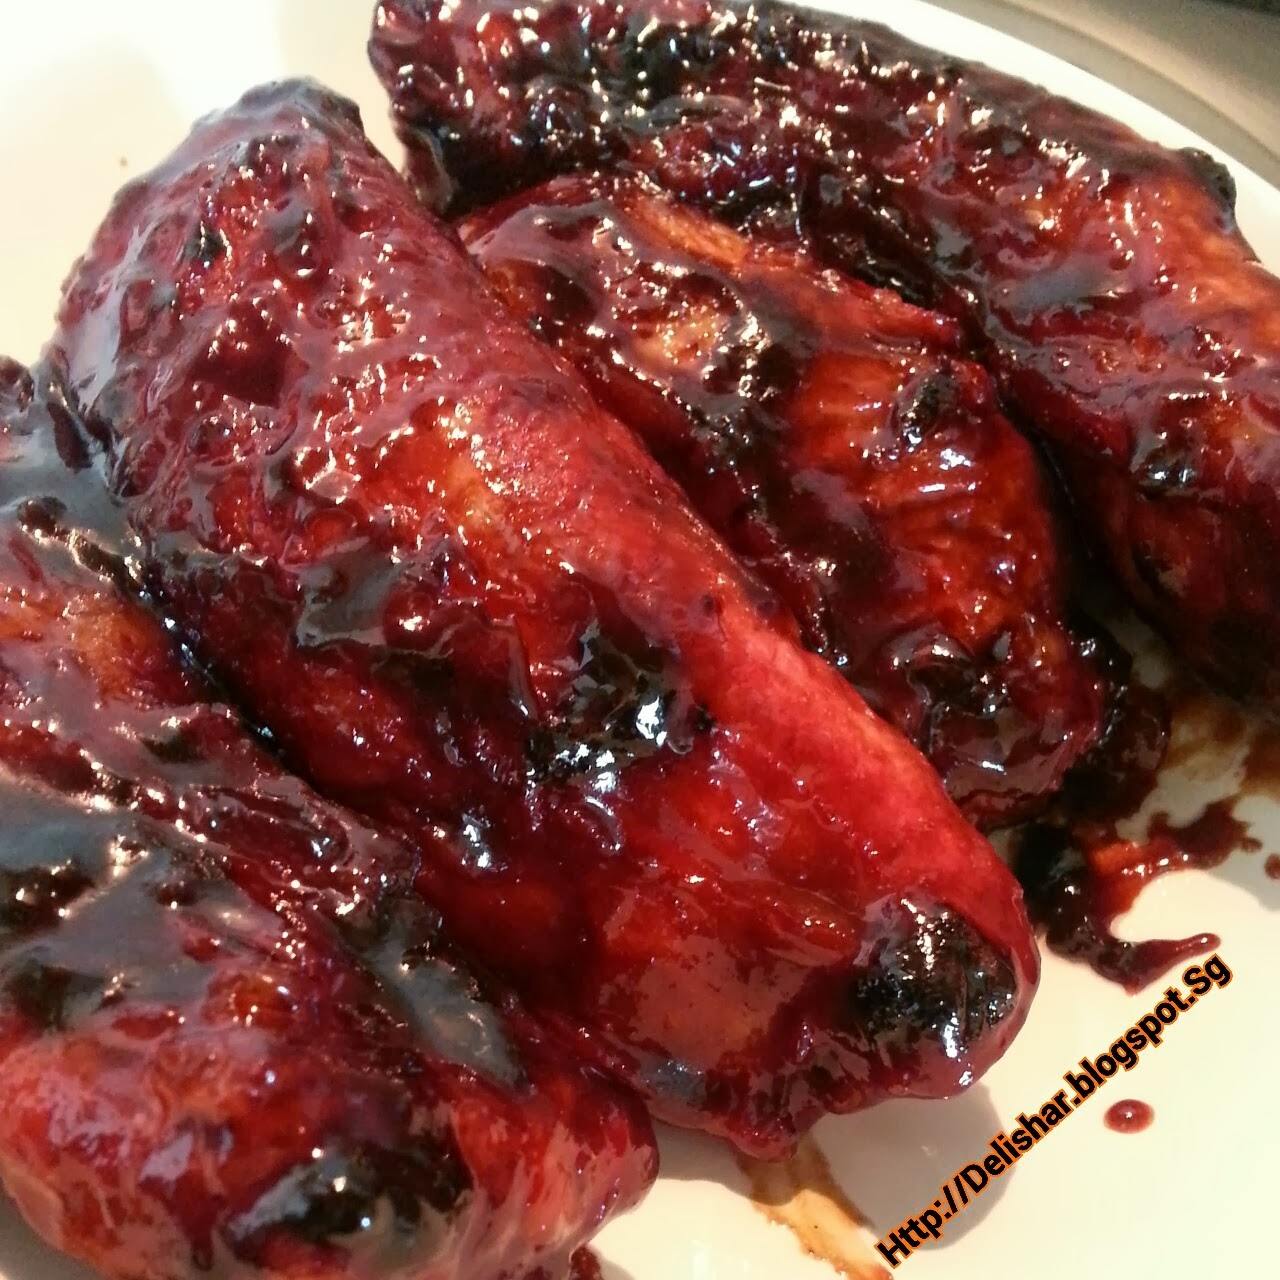 ... : Singapore Cooking & Food Blog: HCP Char Siew (Chinese BBQ pork